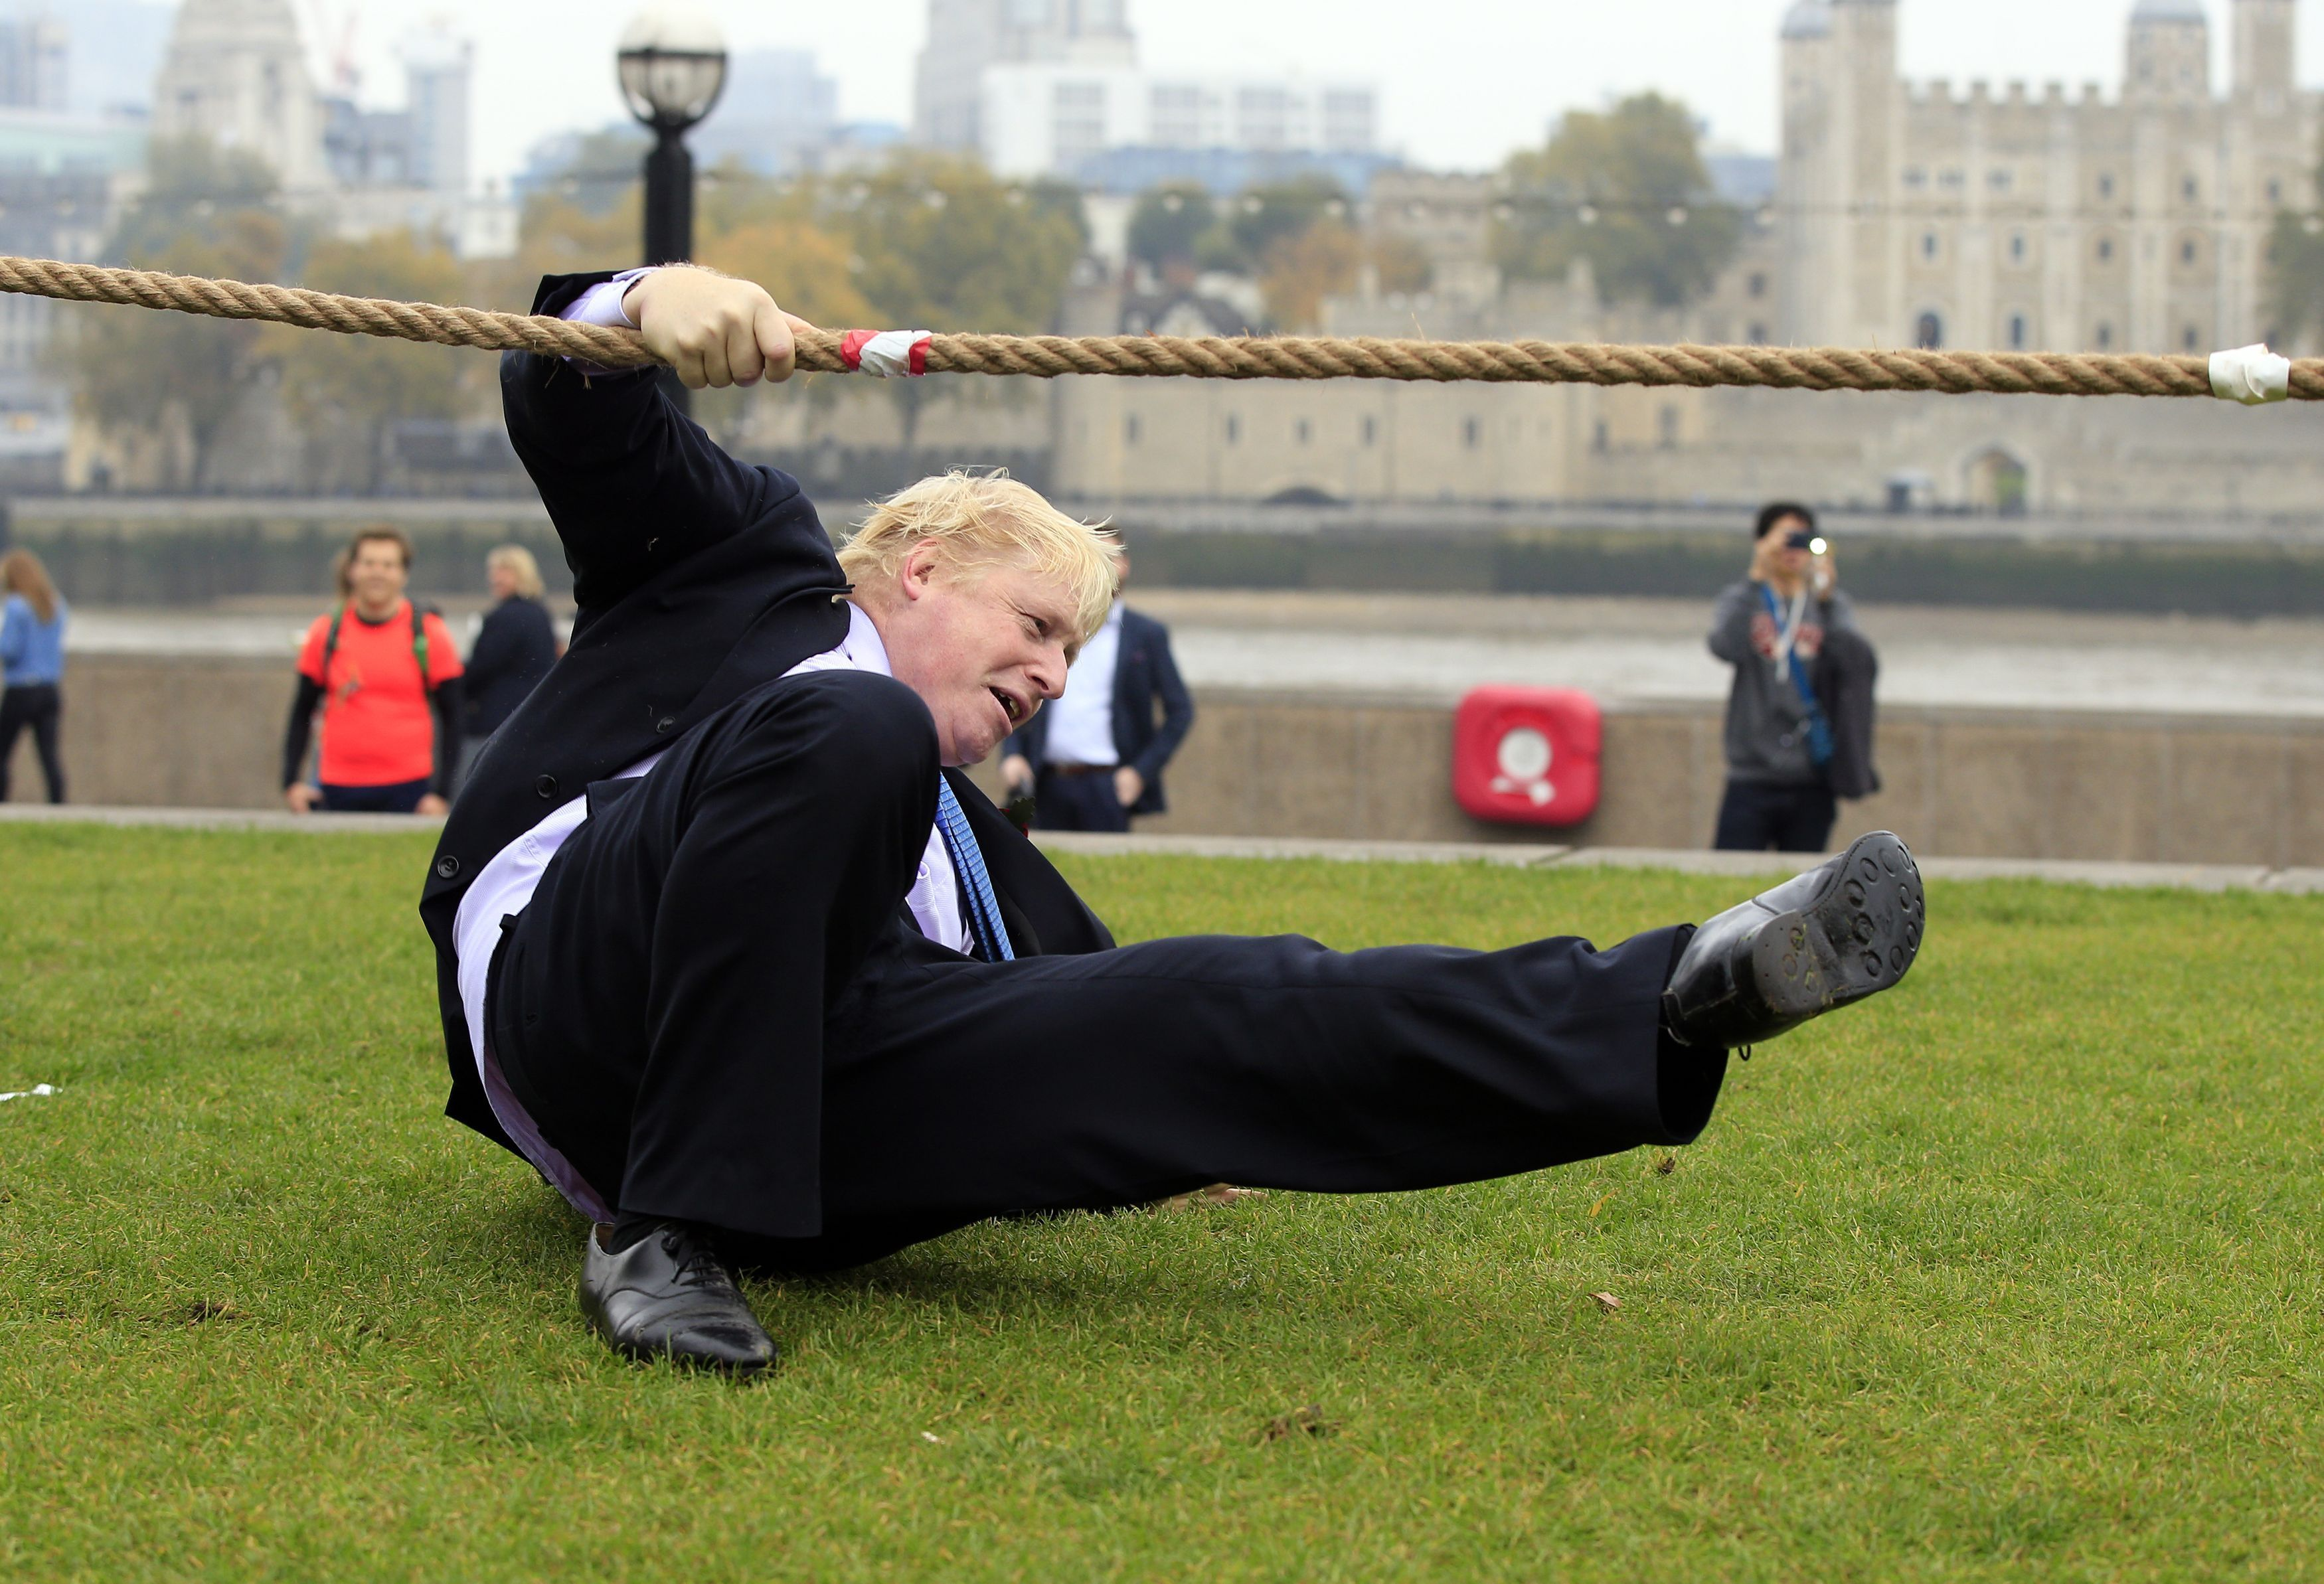 Mayor of London Boris Johnson falls over during a tug of war with personnel from the Royal Navy, the Army and the Royal Air Force at the launch of London Poppy Day, on Potters Field, next to City Hall in London.